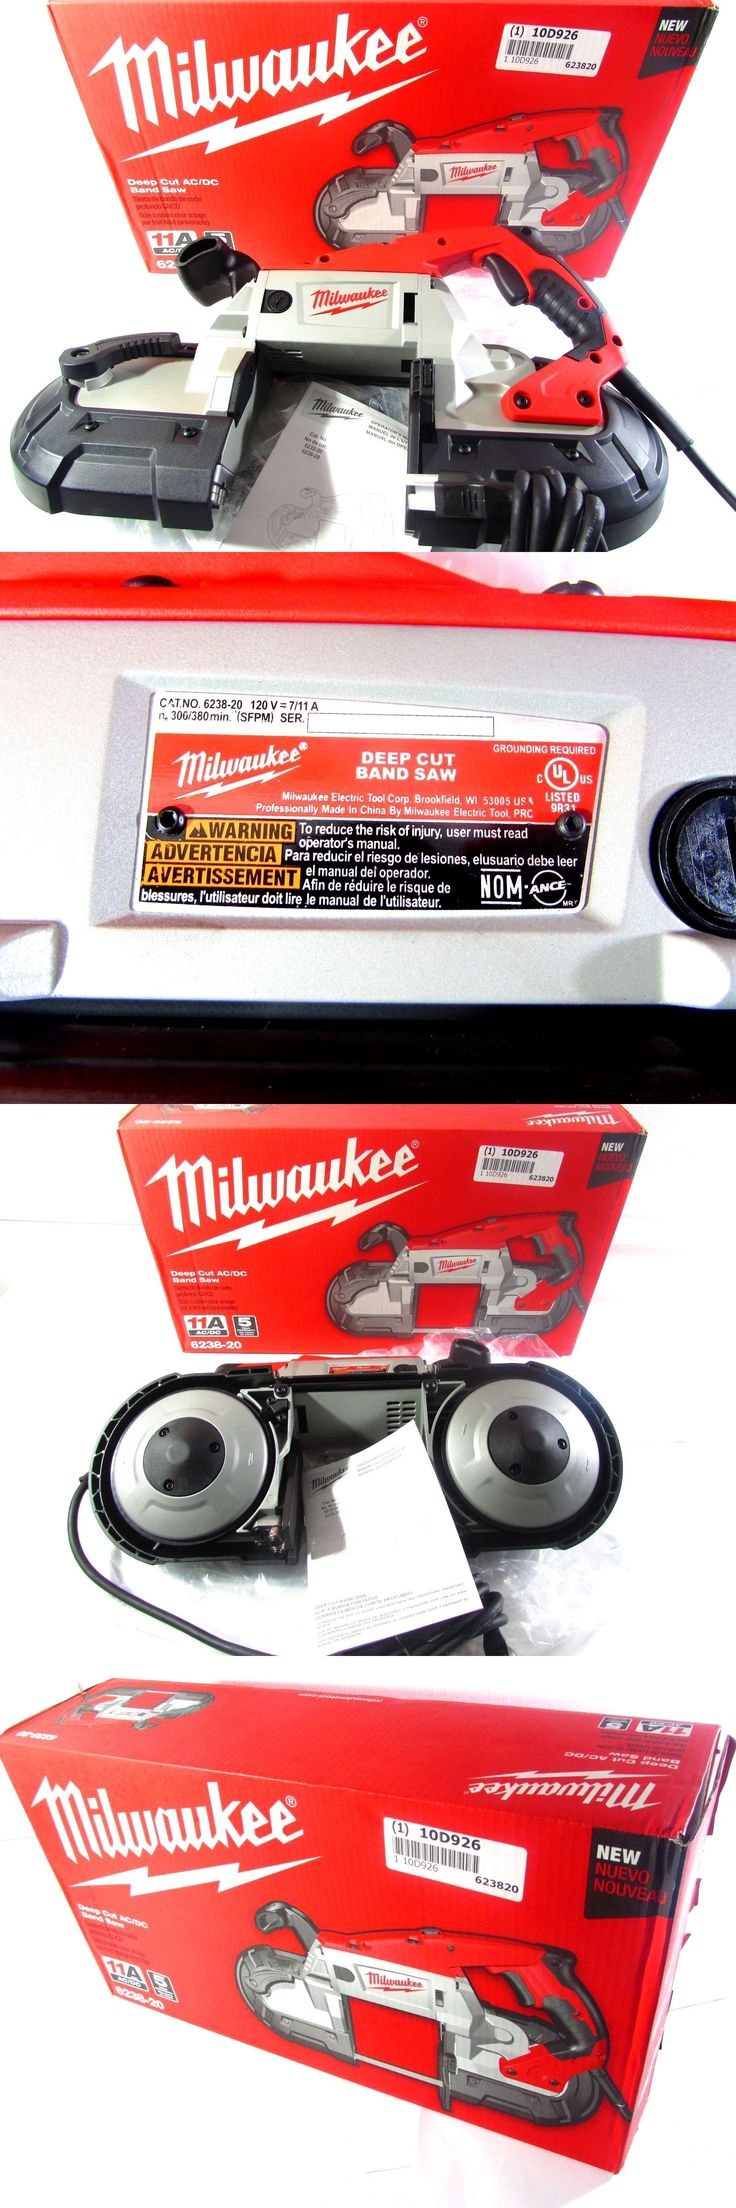 Band Saws 177016: Milwaukee 6238-20 Deep Cut Ac Dc Band Saw -> BUY IT NOW ONLY: $259.95 on eBay!